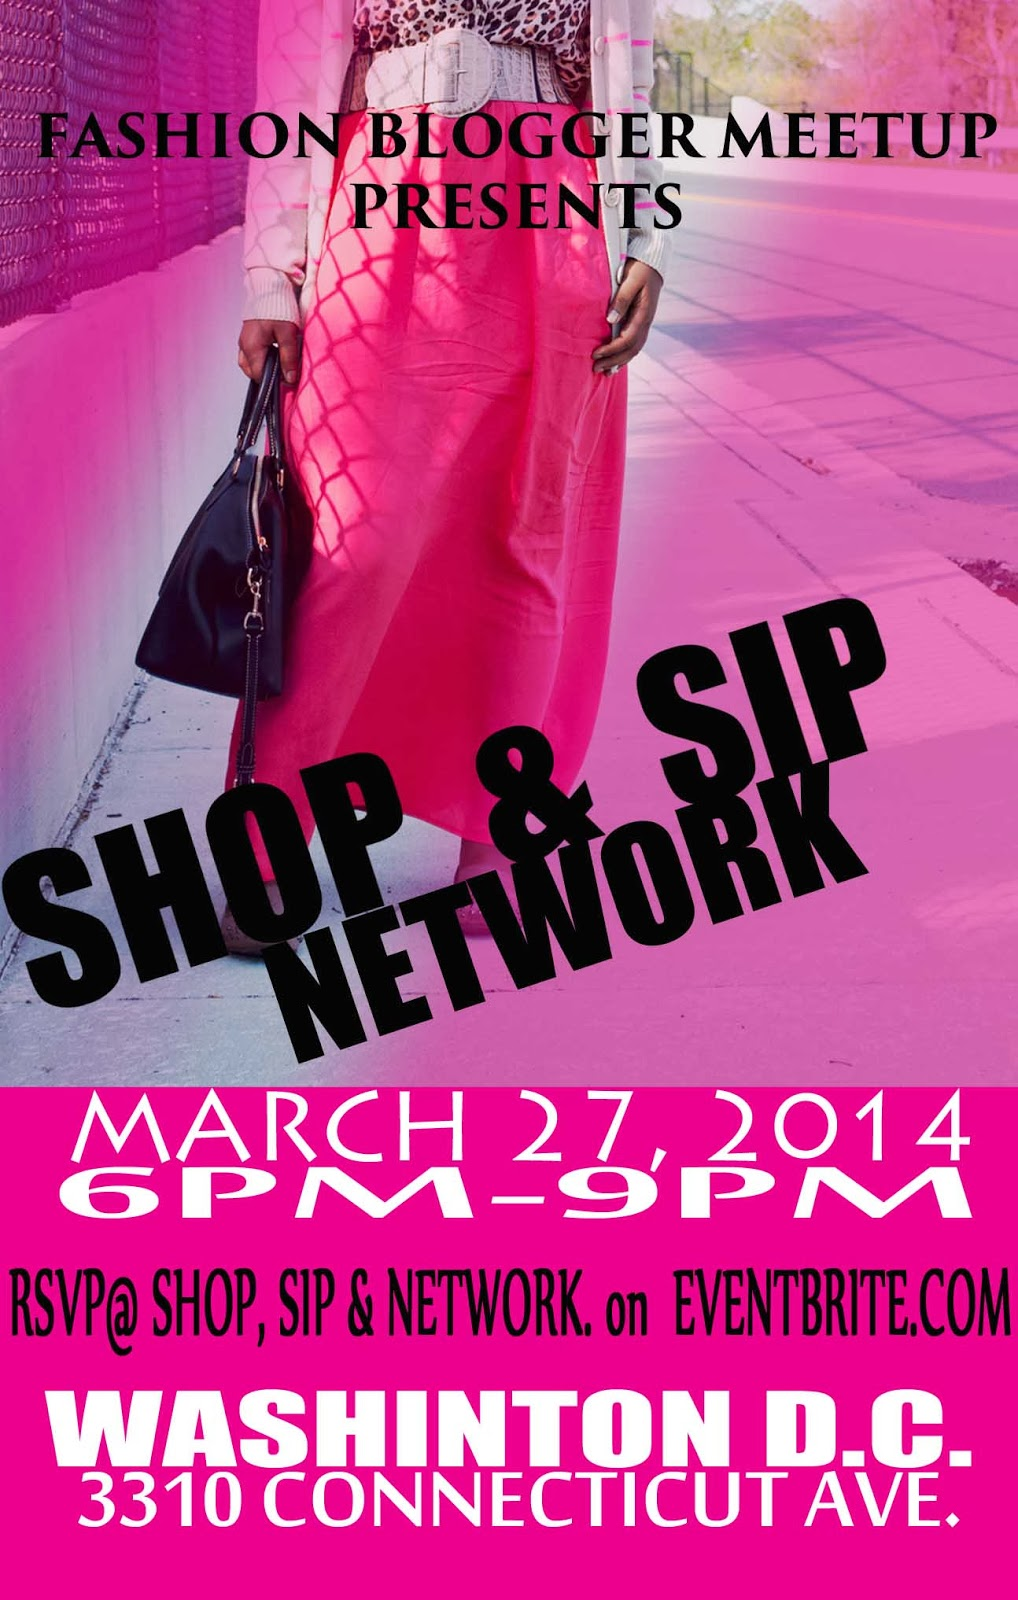 http://www.eventbrite.com/e/shop-sip-network-tickets-10712153339